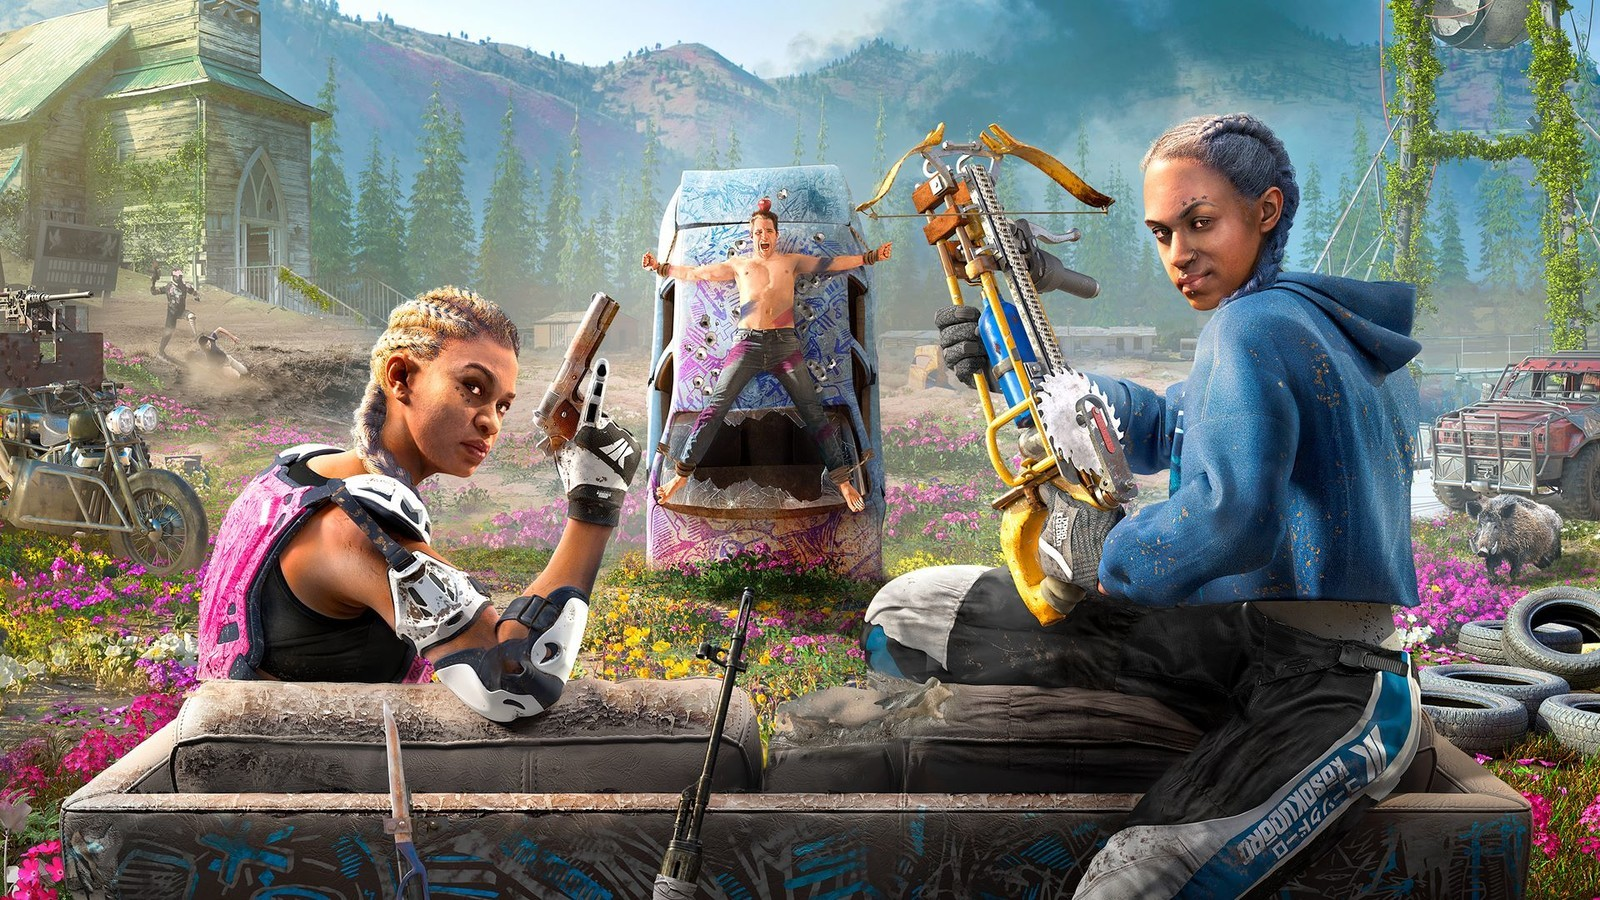 Today's Best Game Deals: Far Cry New Dawn $20 or less, Assassin's Creed Odyssey $25, more